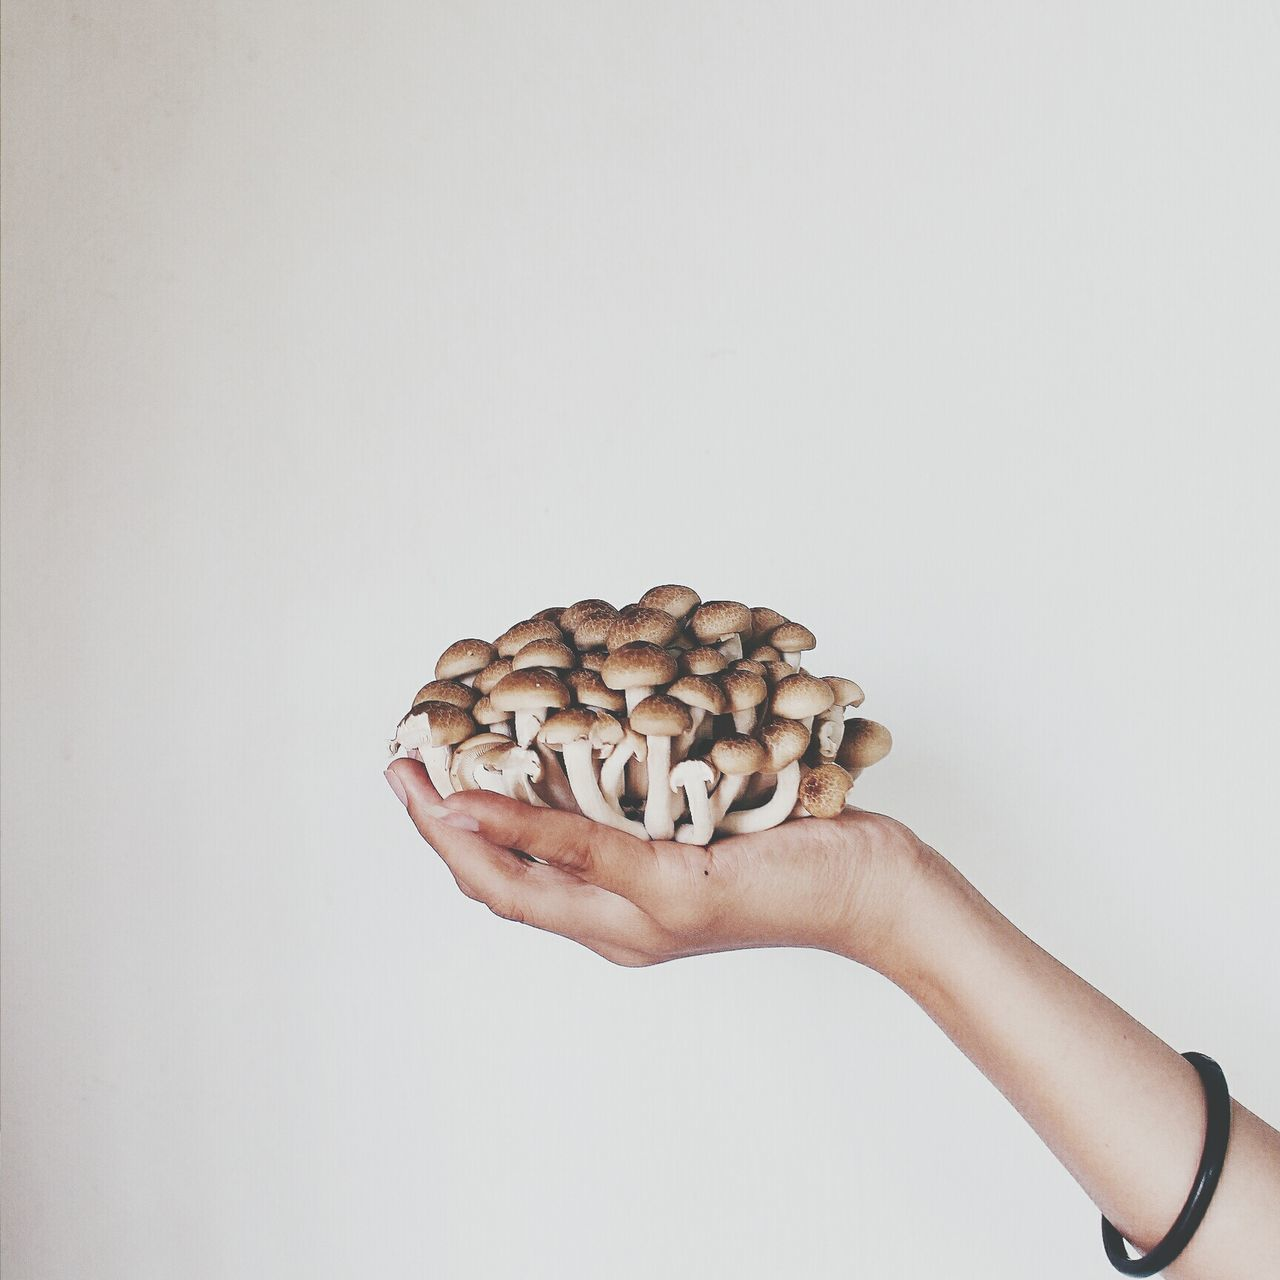 Studio Shot Of Mushroom In Human Hand